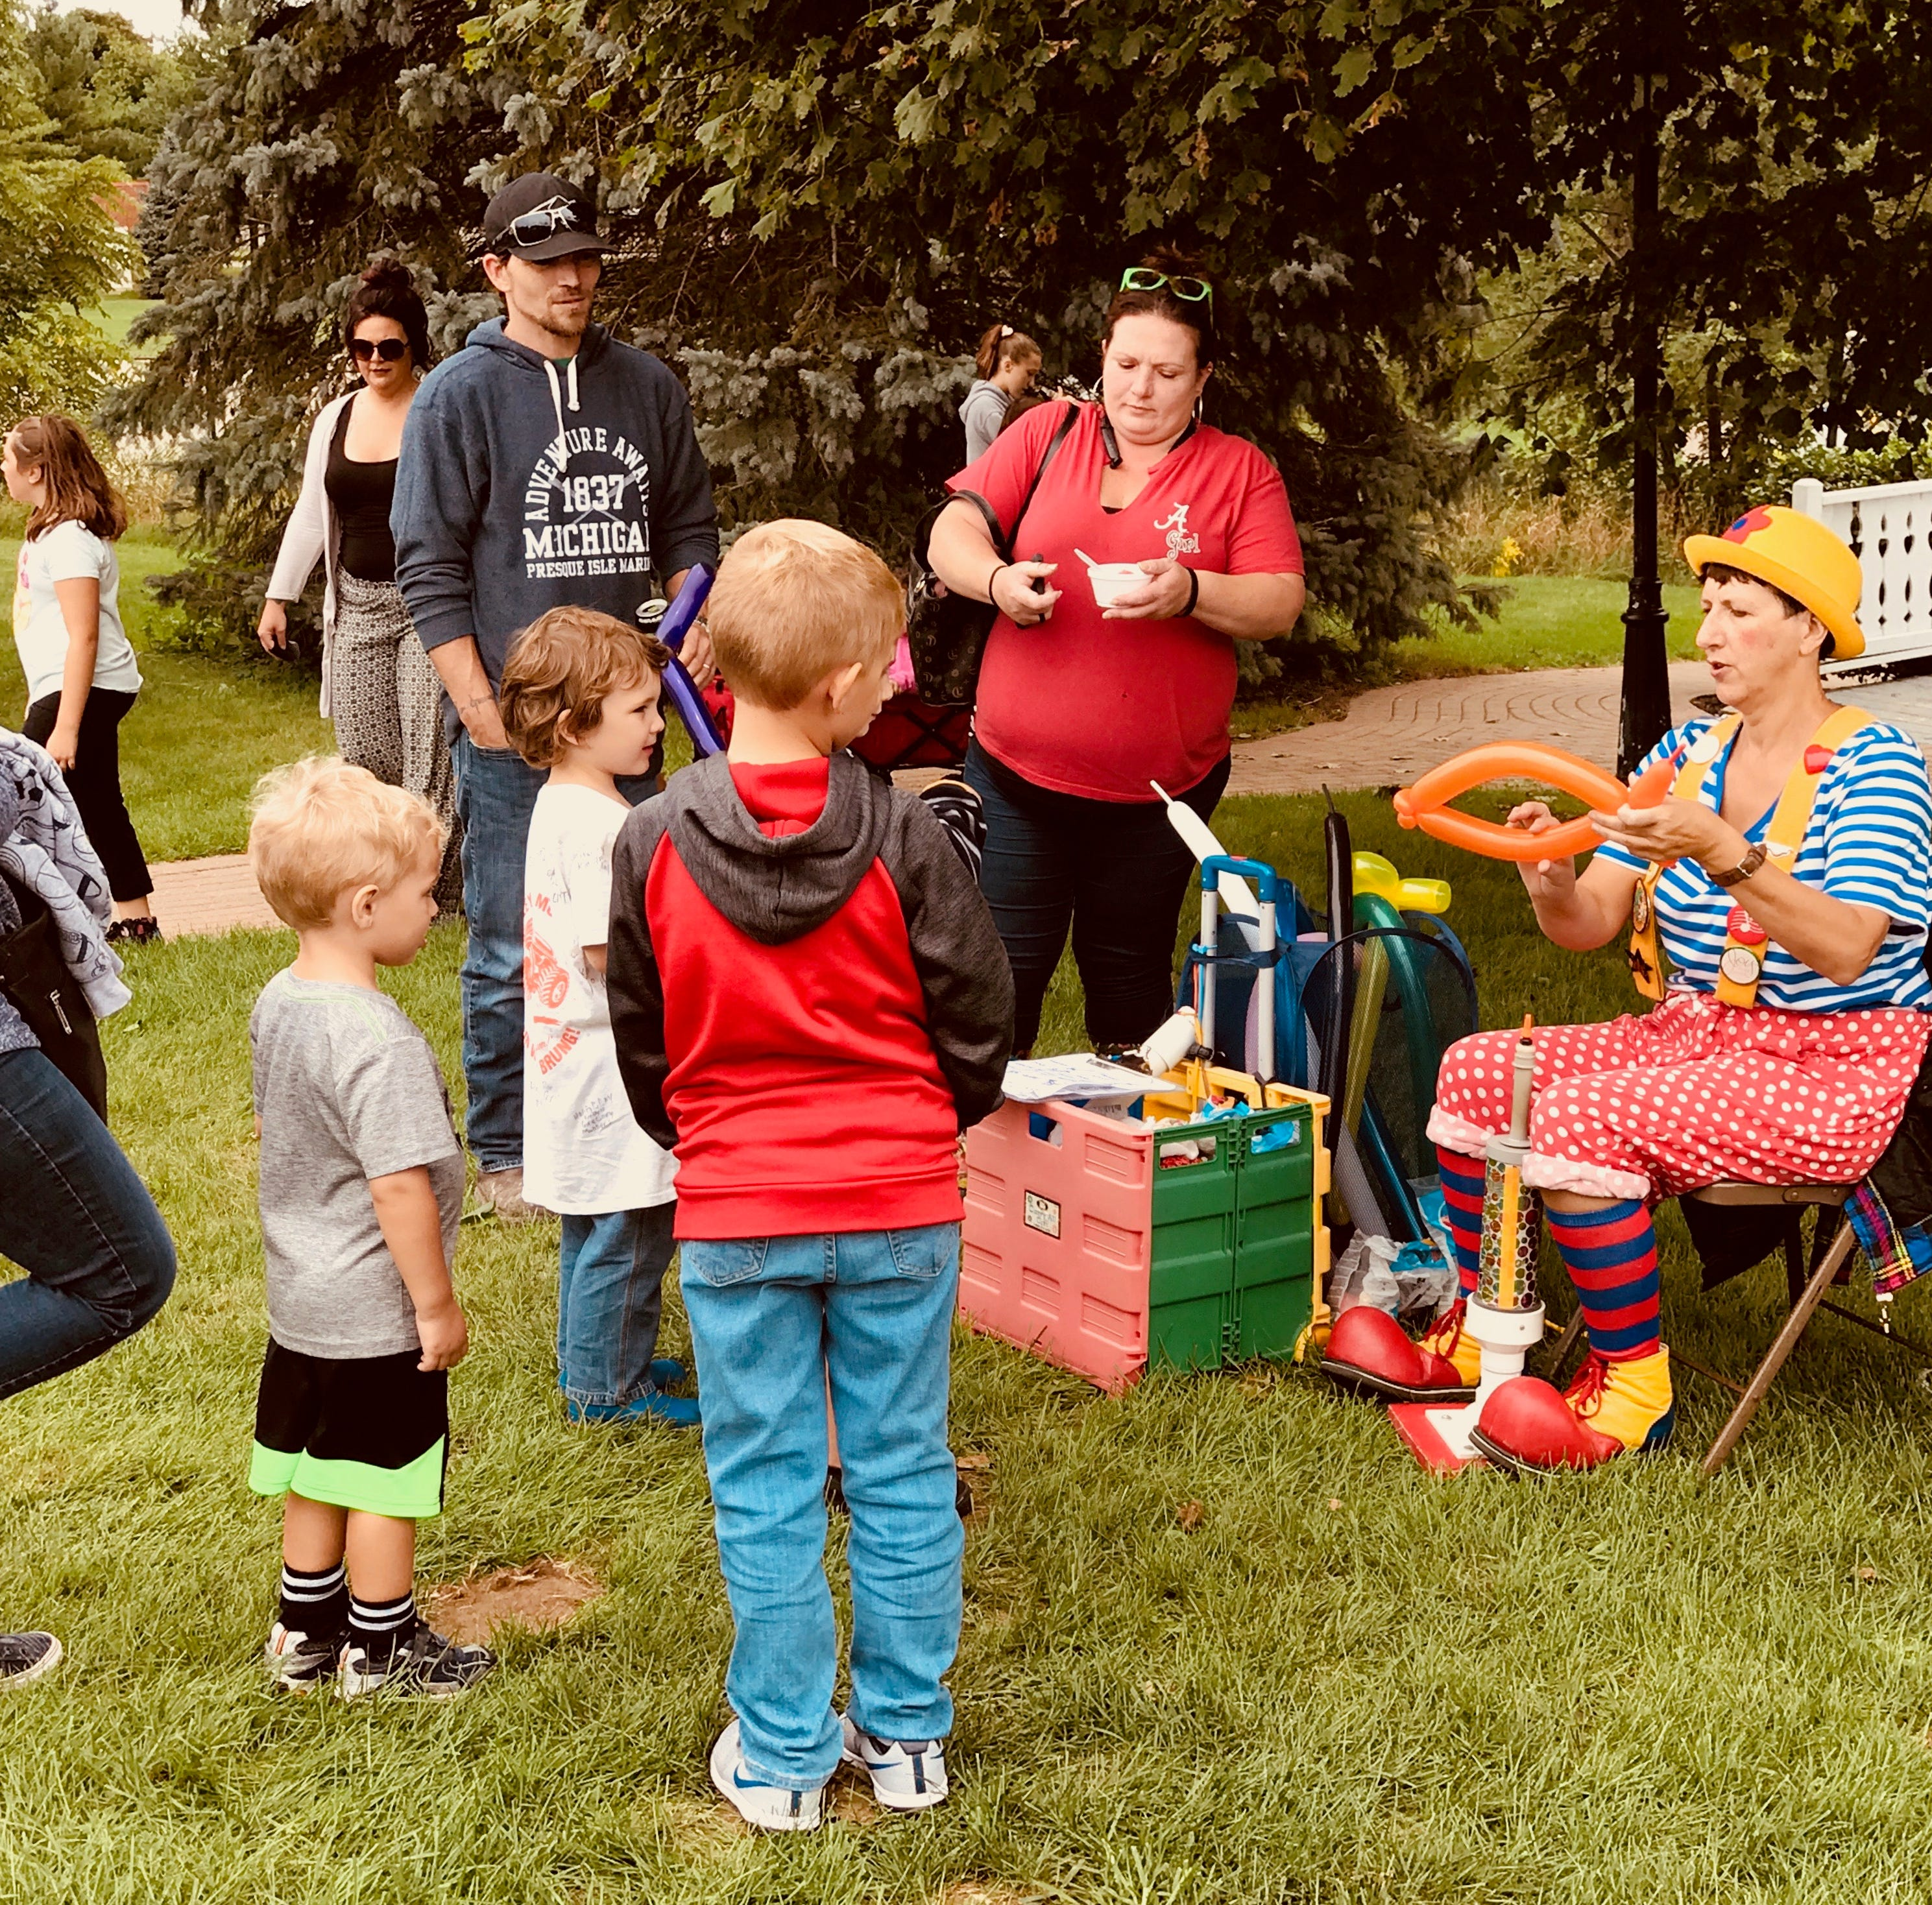 Historical society's Depot Day draws enthusiastic crowd